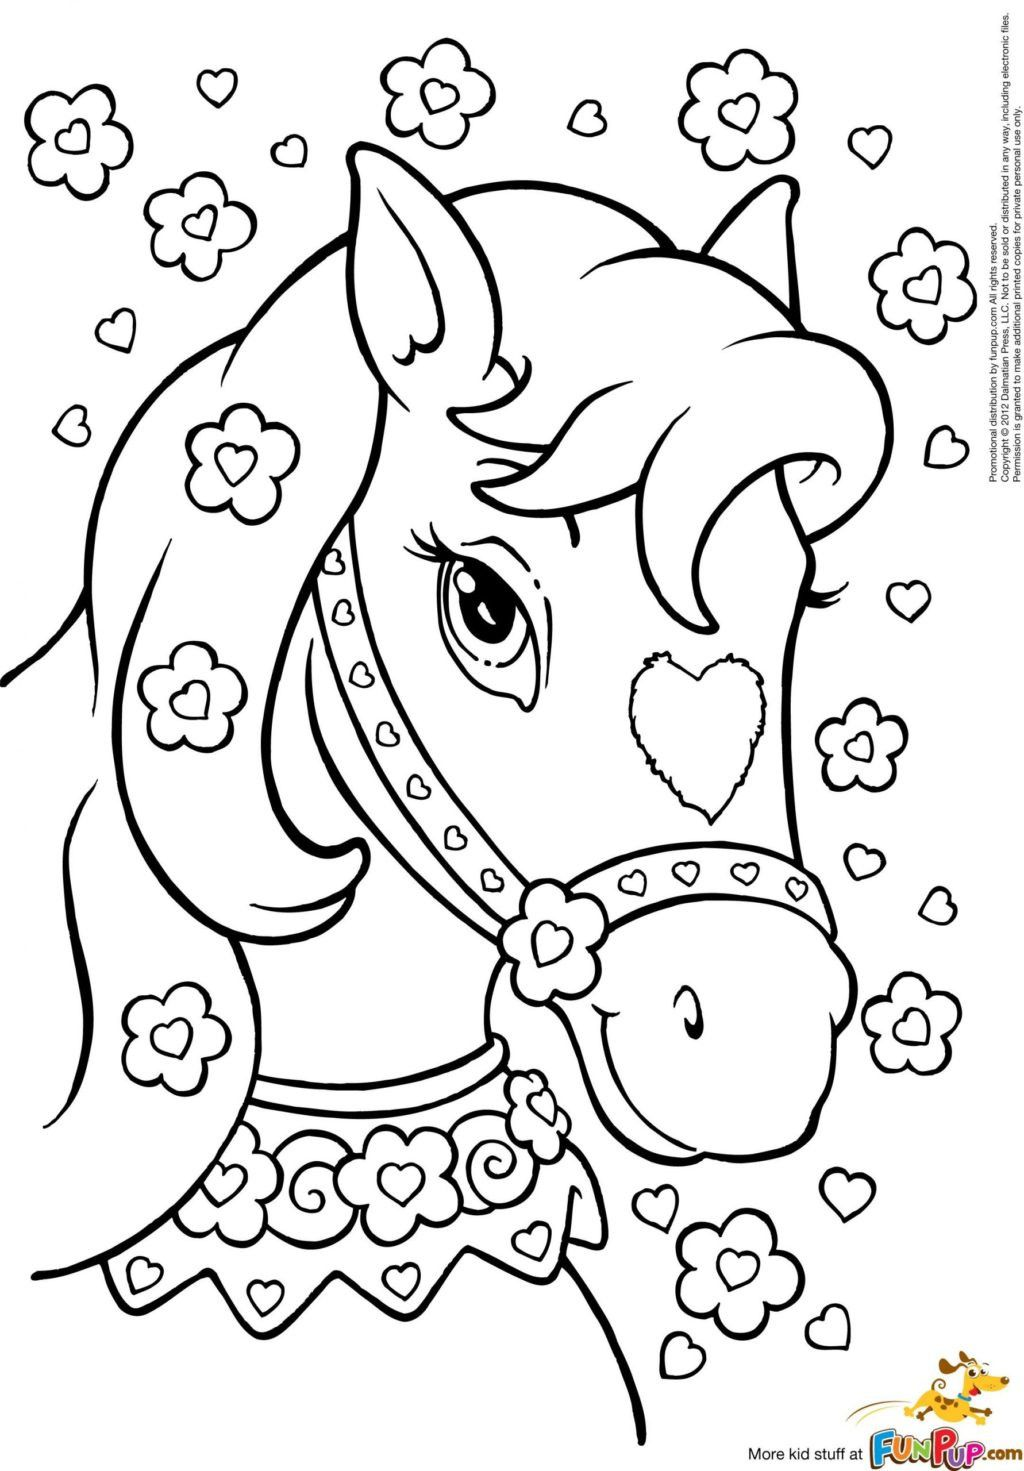 Mermaid Unicorn Coloring Page - youngandtae.com